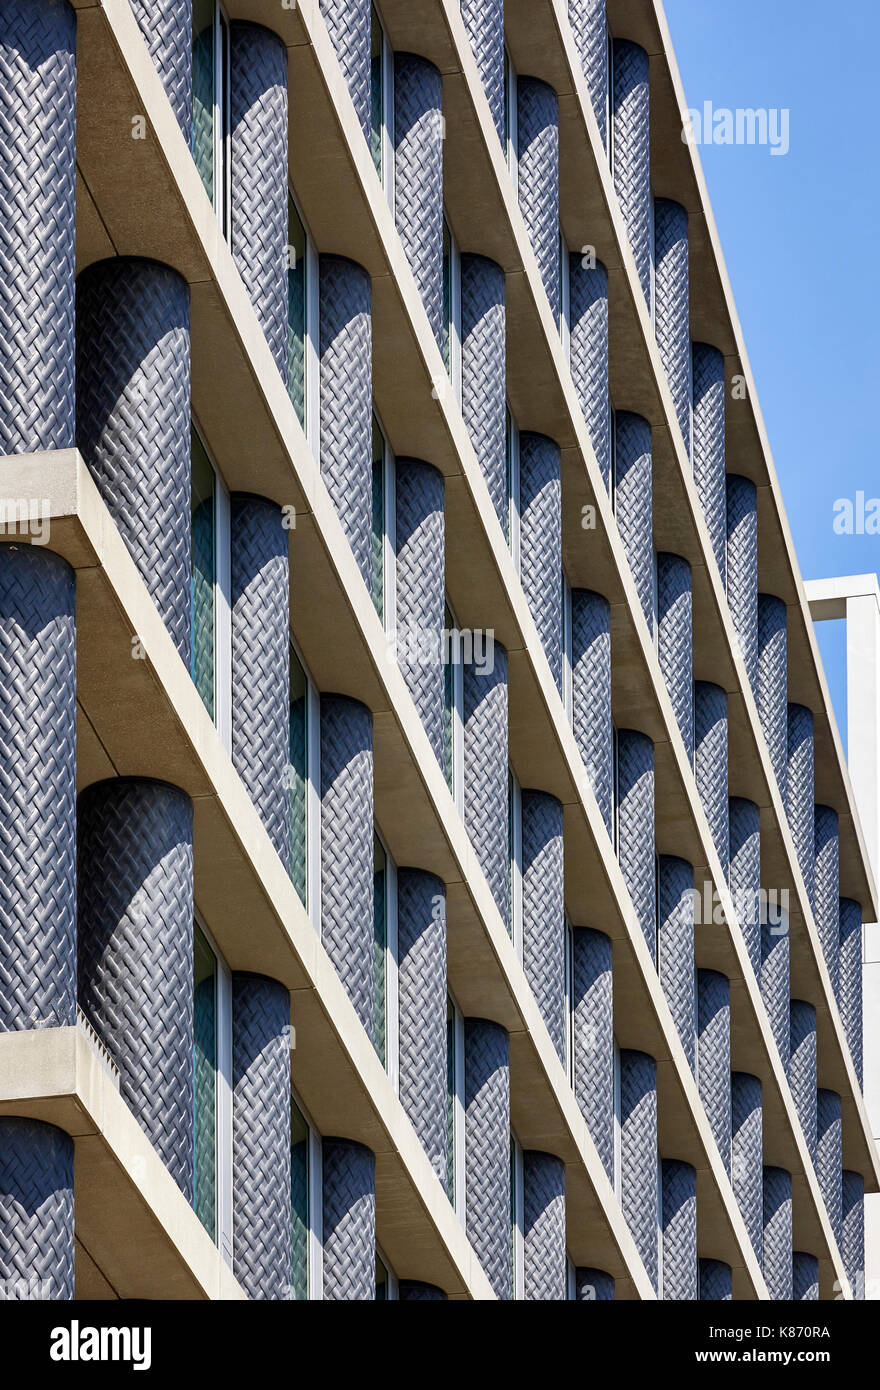 Detail of  Iron columns of One Pancras Square, David Chipperfield Architects. King's Cross Estate, London, United Kingdom. Architect: various architec - Stock Image